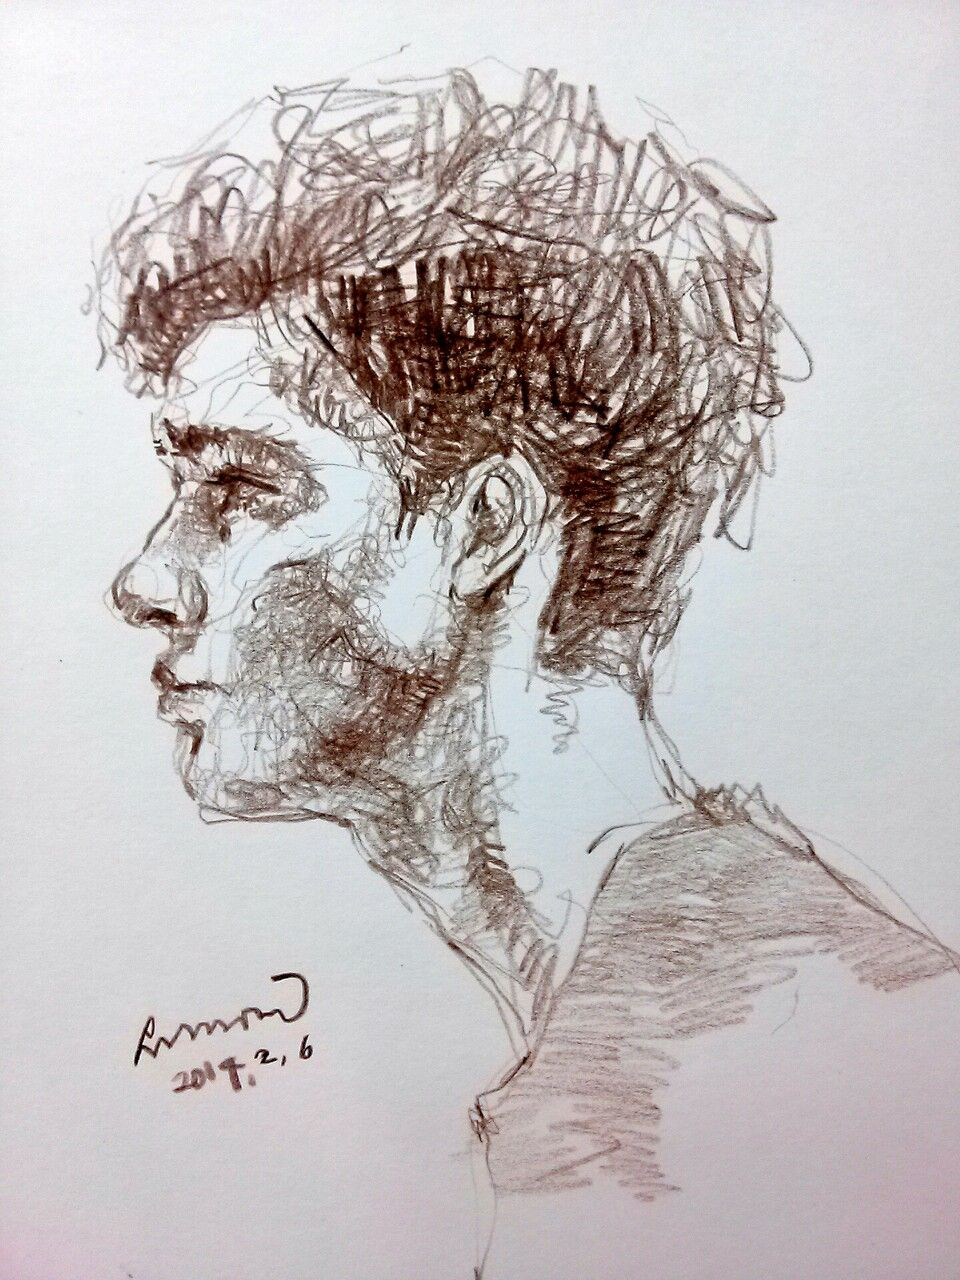 areasdrawing: Faber castell color pencil. Model Robbie beeser ...